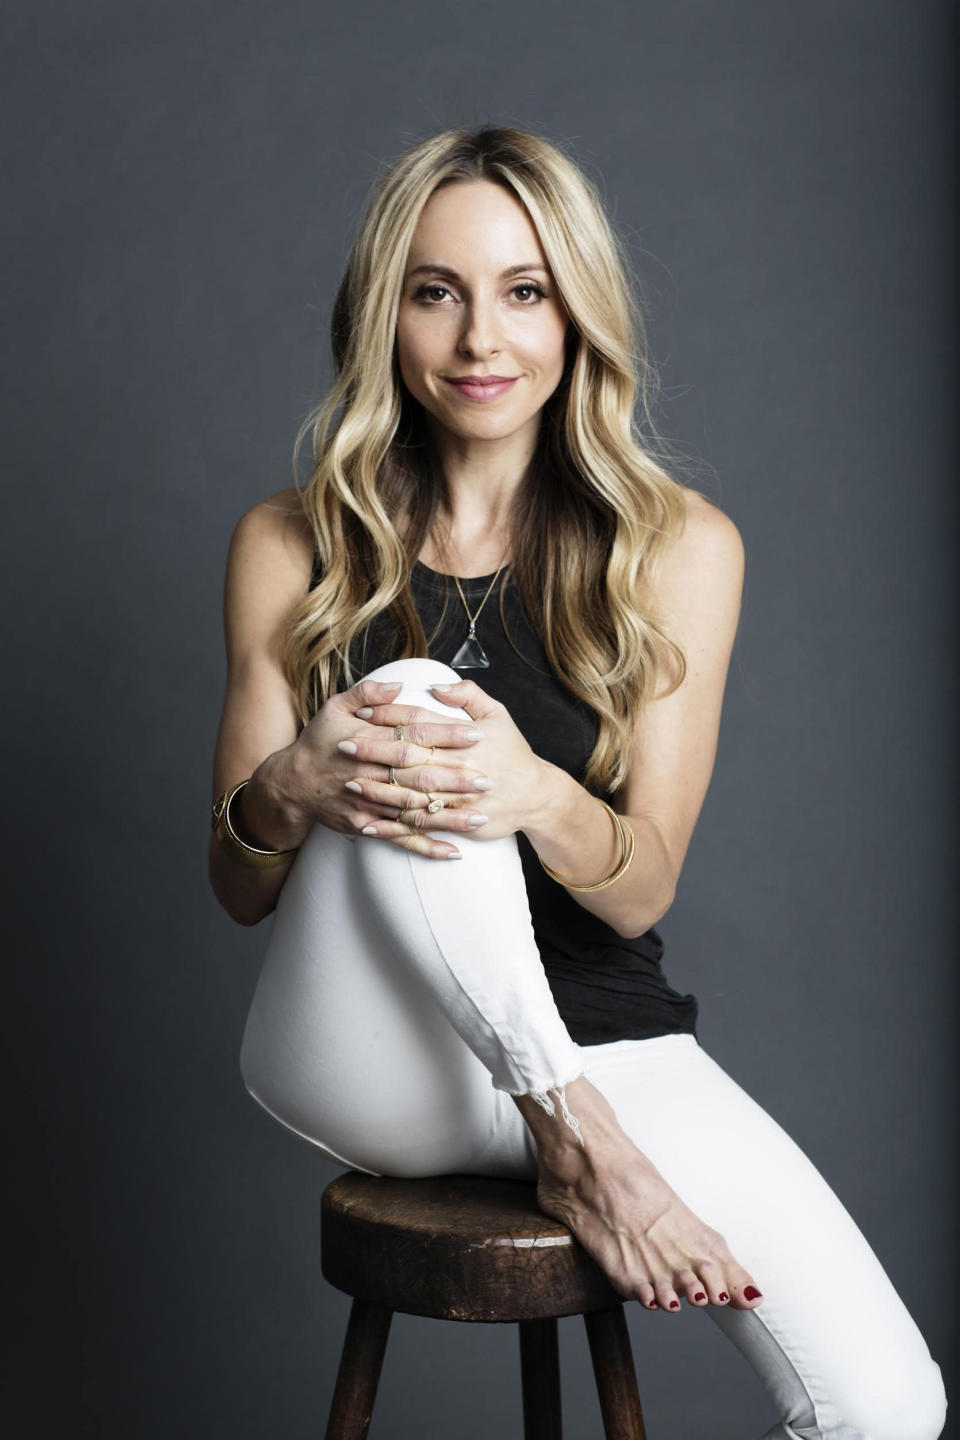 Gabrielle Bernstein has inspired thousands of people to awaken their confidence and live their purpose. She believes the best practice of self-care is meditation. (Photo: Chloe Crespi)